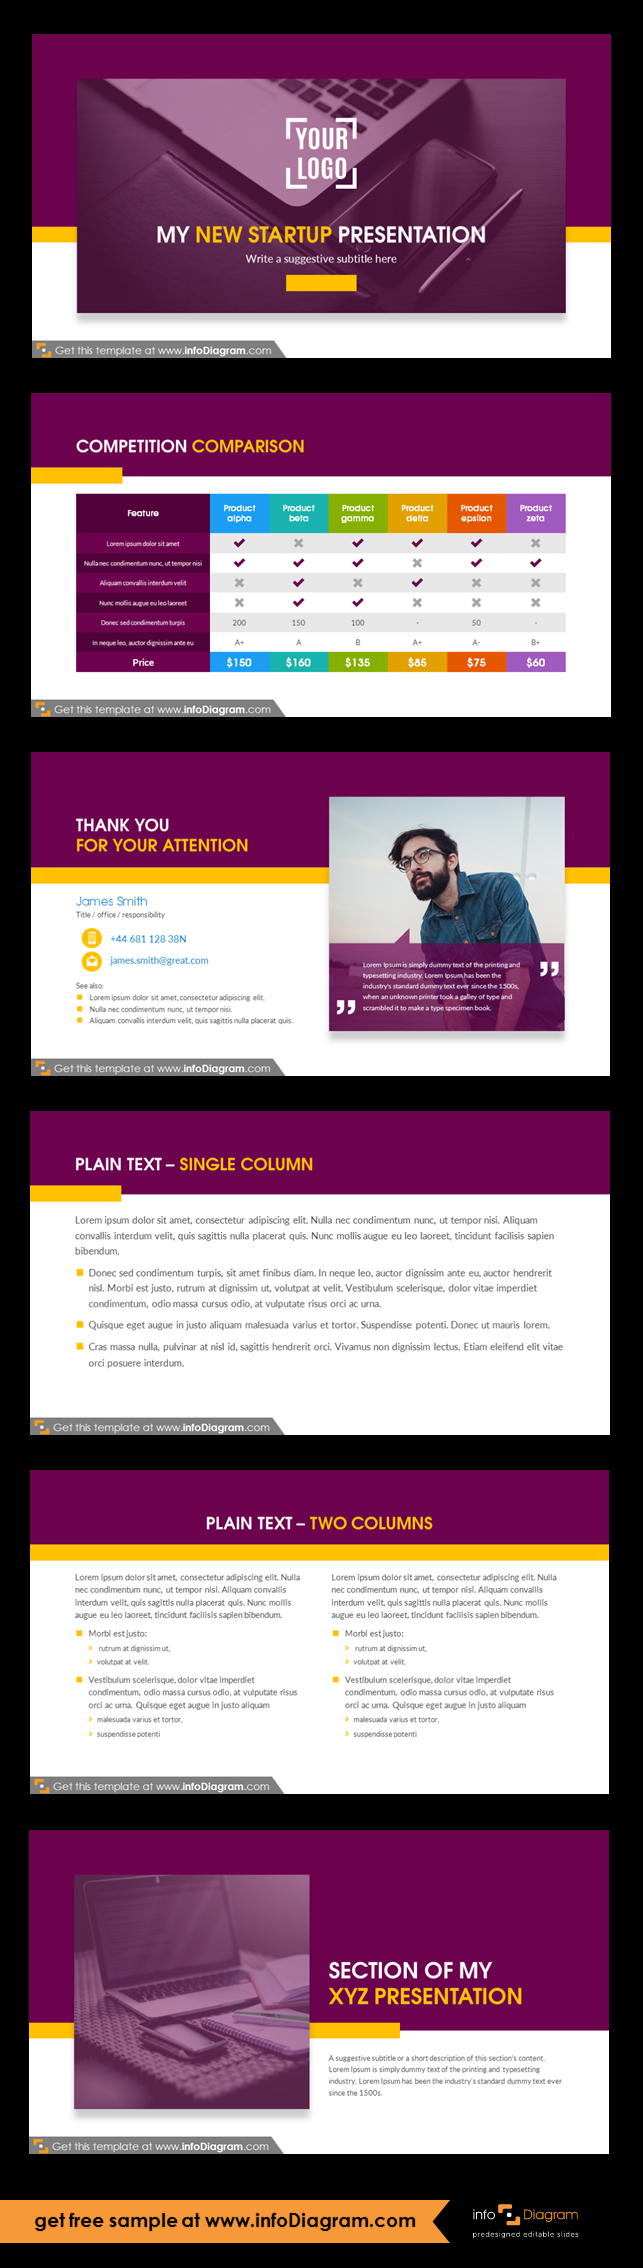 New startup company presentation template and slide deck with predesigned infographics shapes and slide content ideal for new business idea presentation or pitch deck for investors competition comparison table fbccfo Choice Image